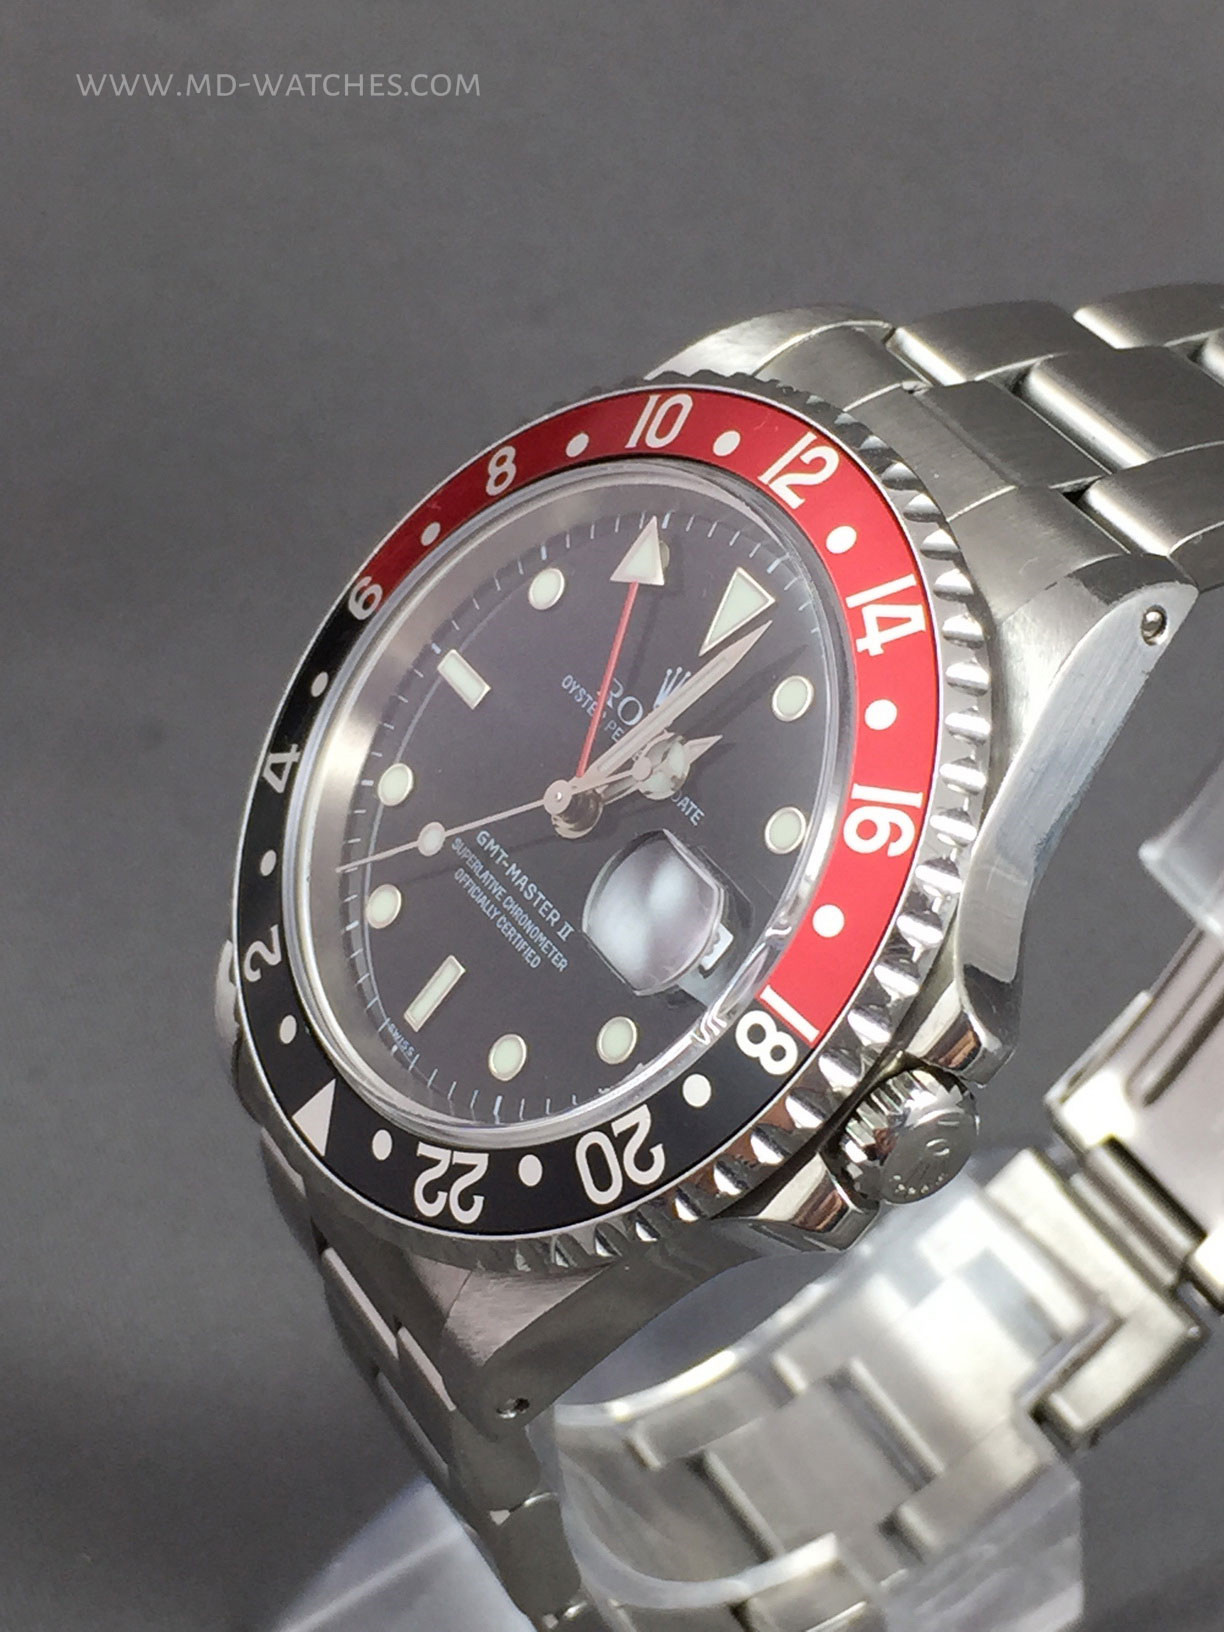 dating a rolex gmt Close to the style of the submariner are related models such as the gmt-master ii (similar in appearance but with a second time zone hand), the sea-dweller deepsea (a while other potential rolex dress watches exist, we like to focus on the datejust ii and day-date ii as good 'first' rolex watch models.